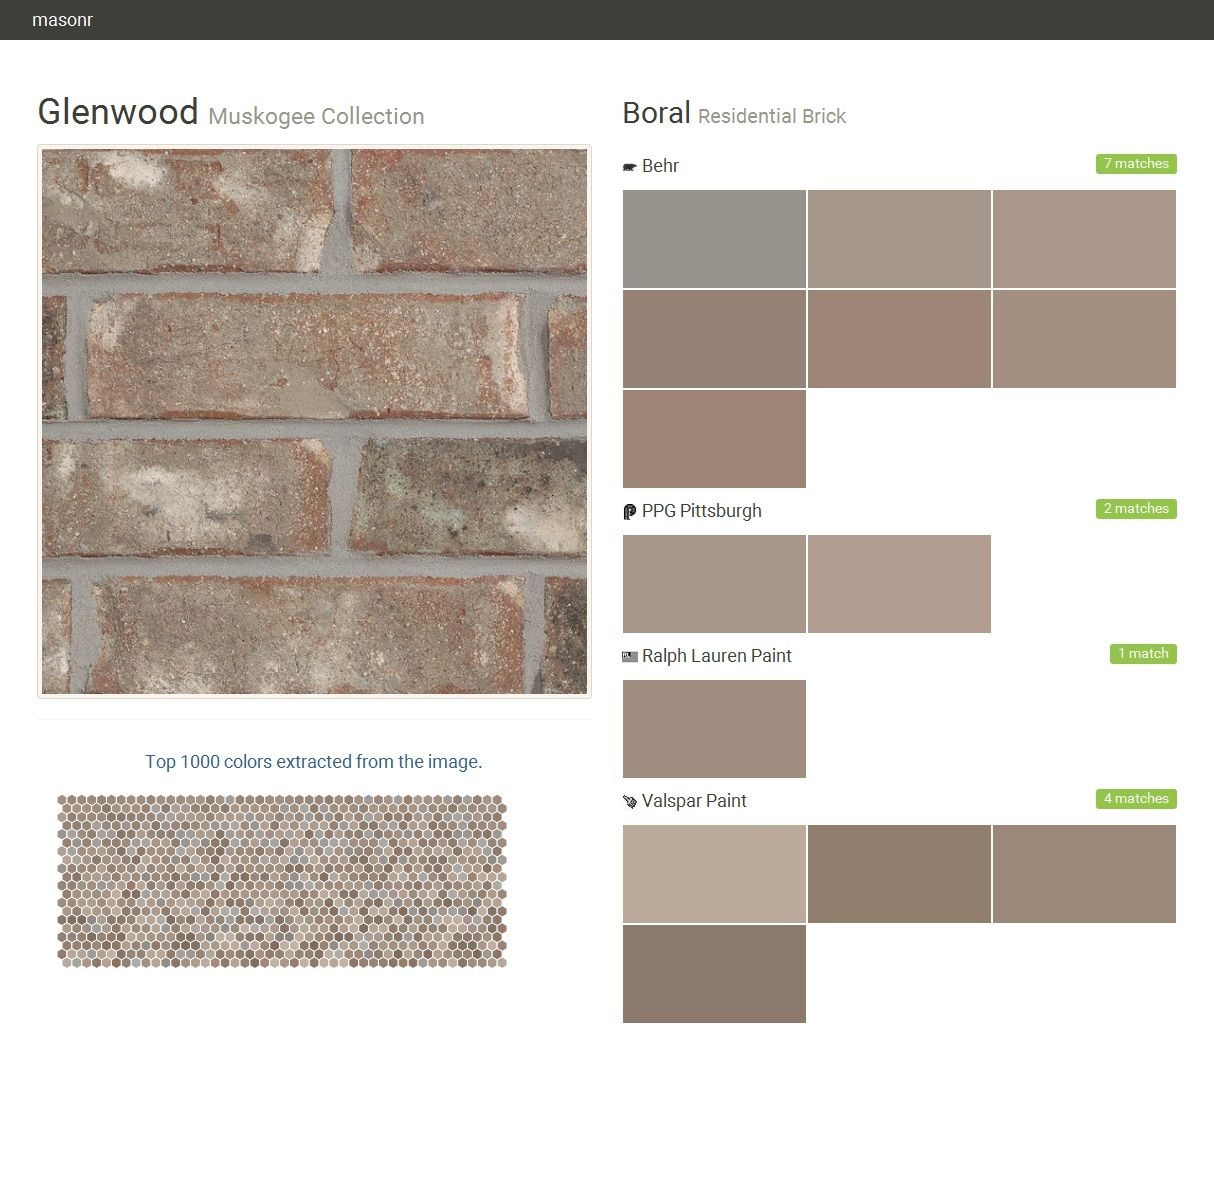 Glenwood muskogee collection residential brick boral behr ppg paints ralph lauren paint - Breathable exterior masonry paint collection ...